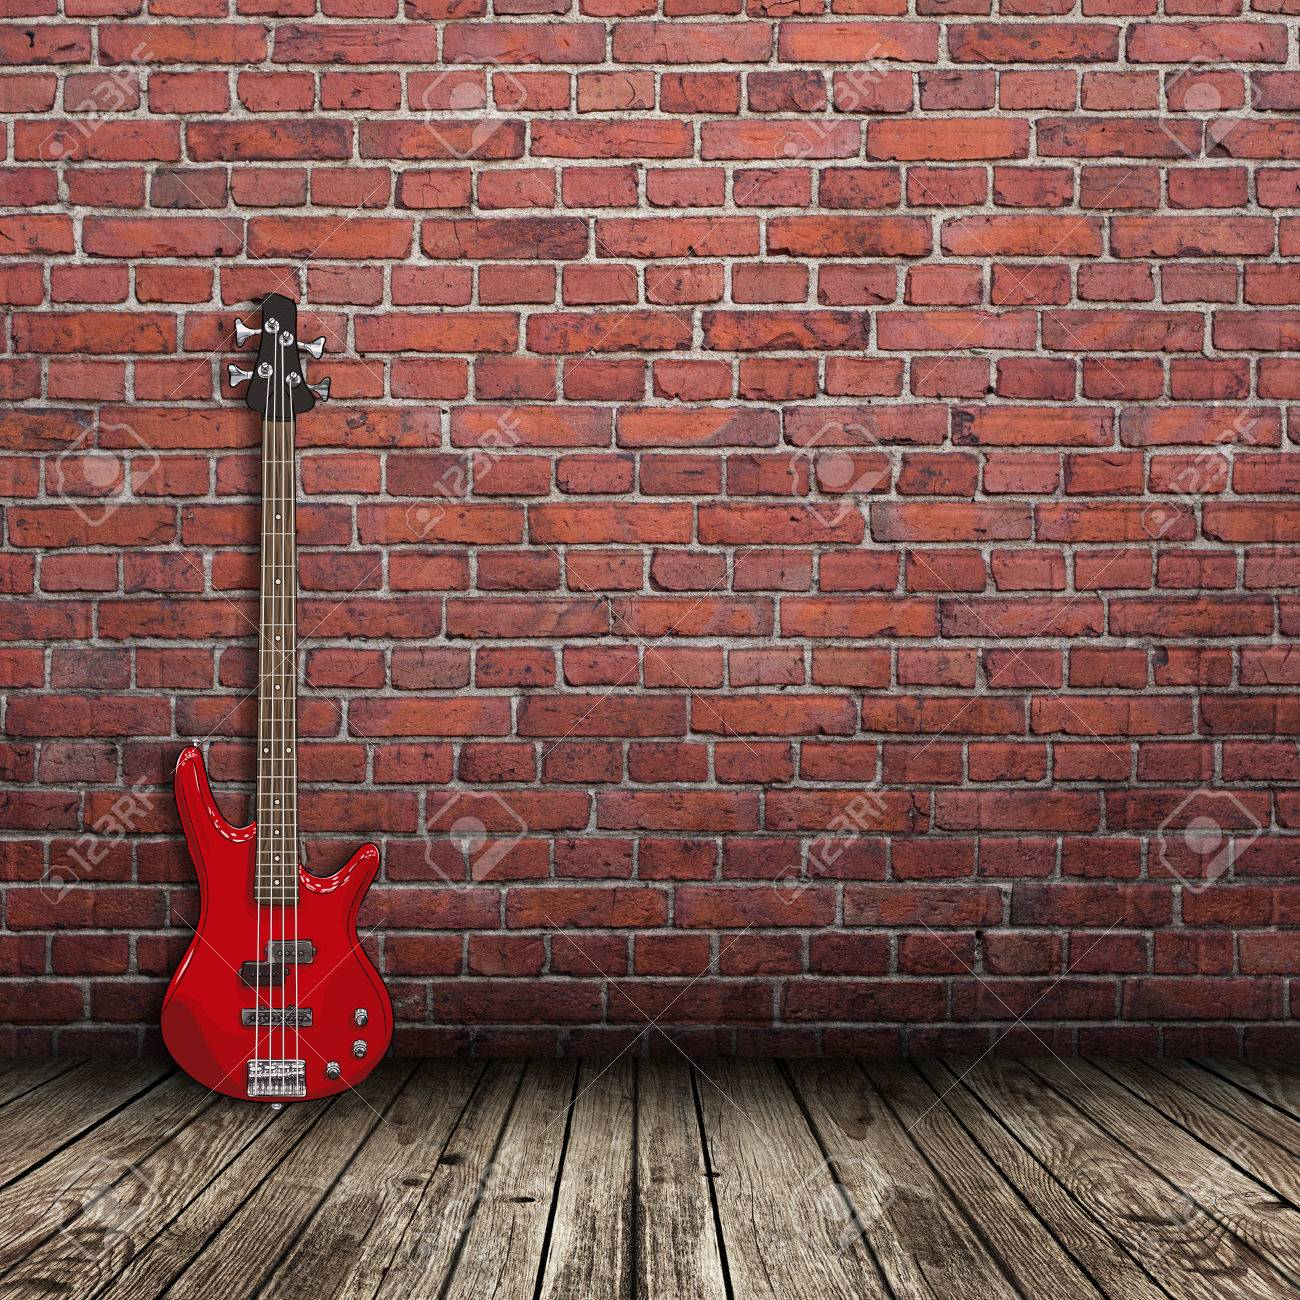 Red Electric Guitar In The Room With Brick Wall Background Stock Photo Picture And Royalty Free Image Image 47347798